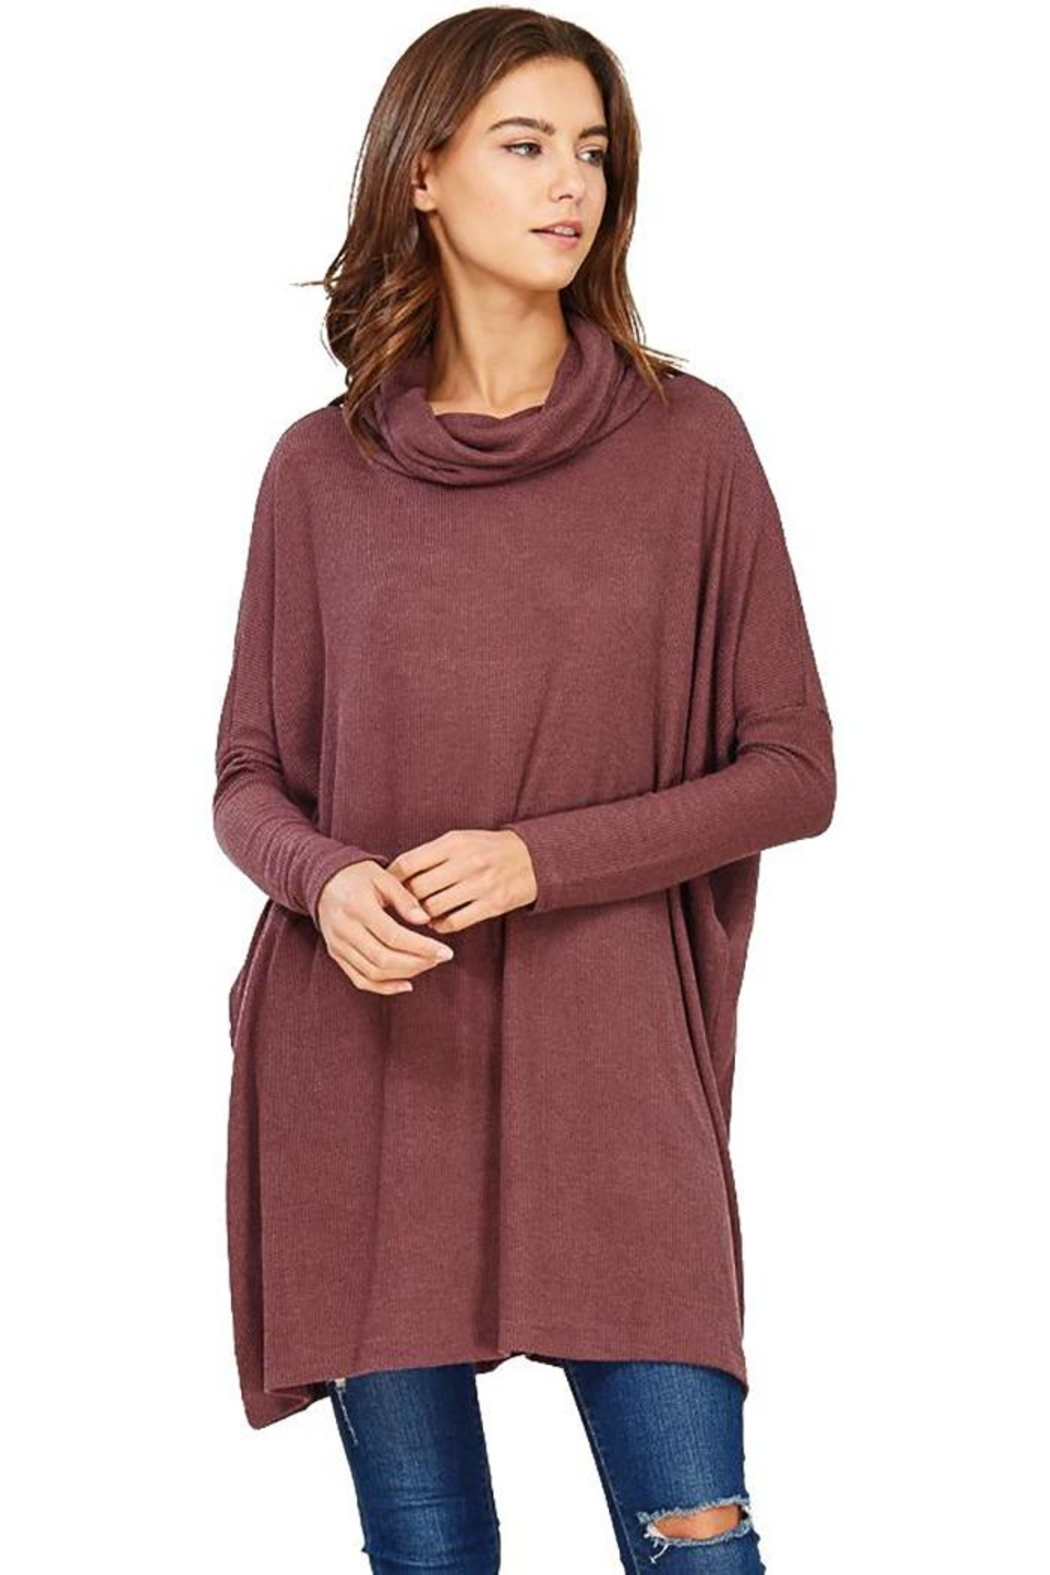 Audrey 3+1 Edie Turtleneck Sweater Dress - Main Image